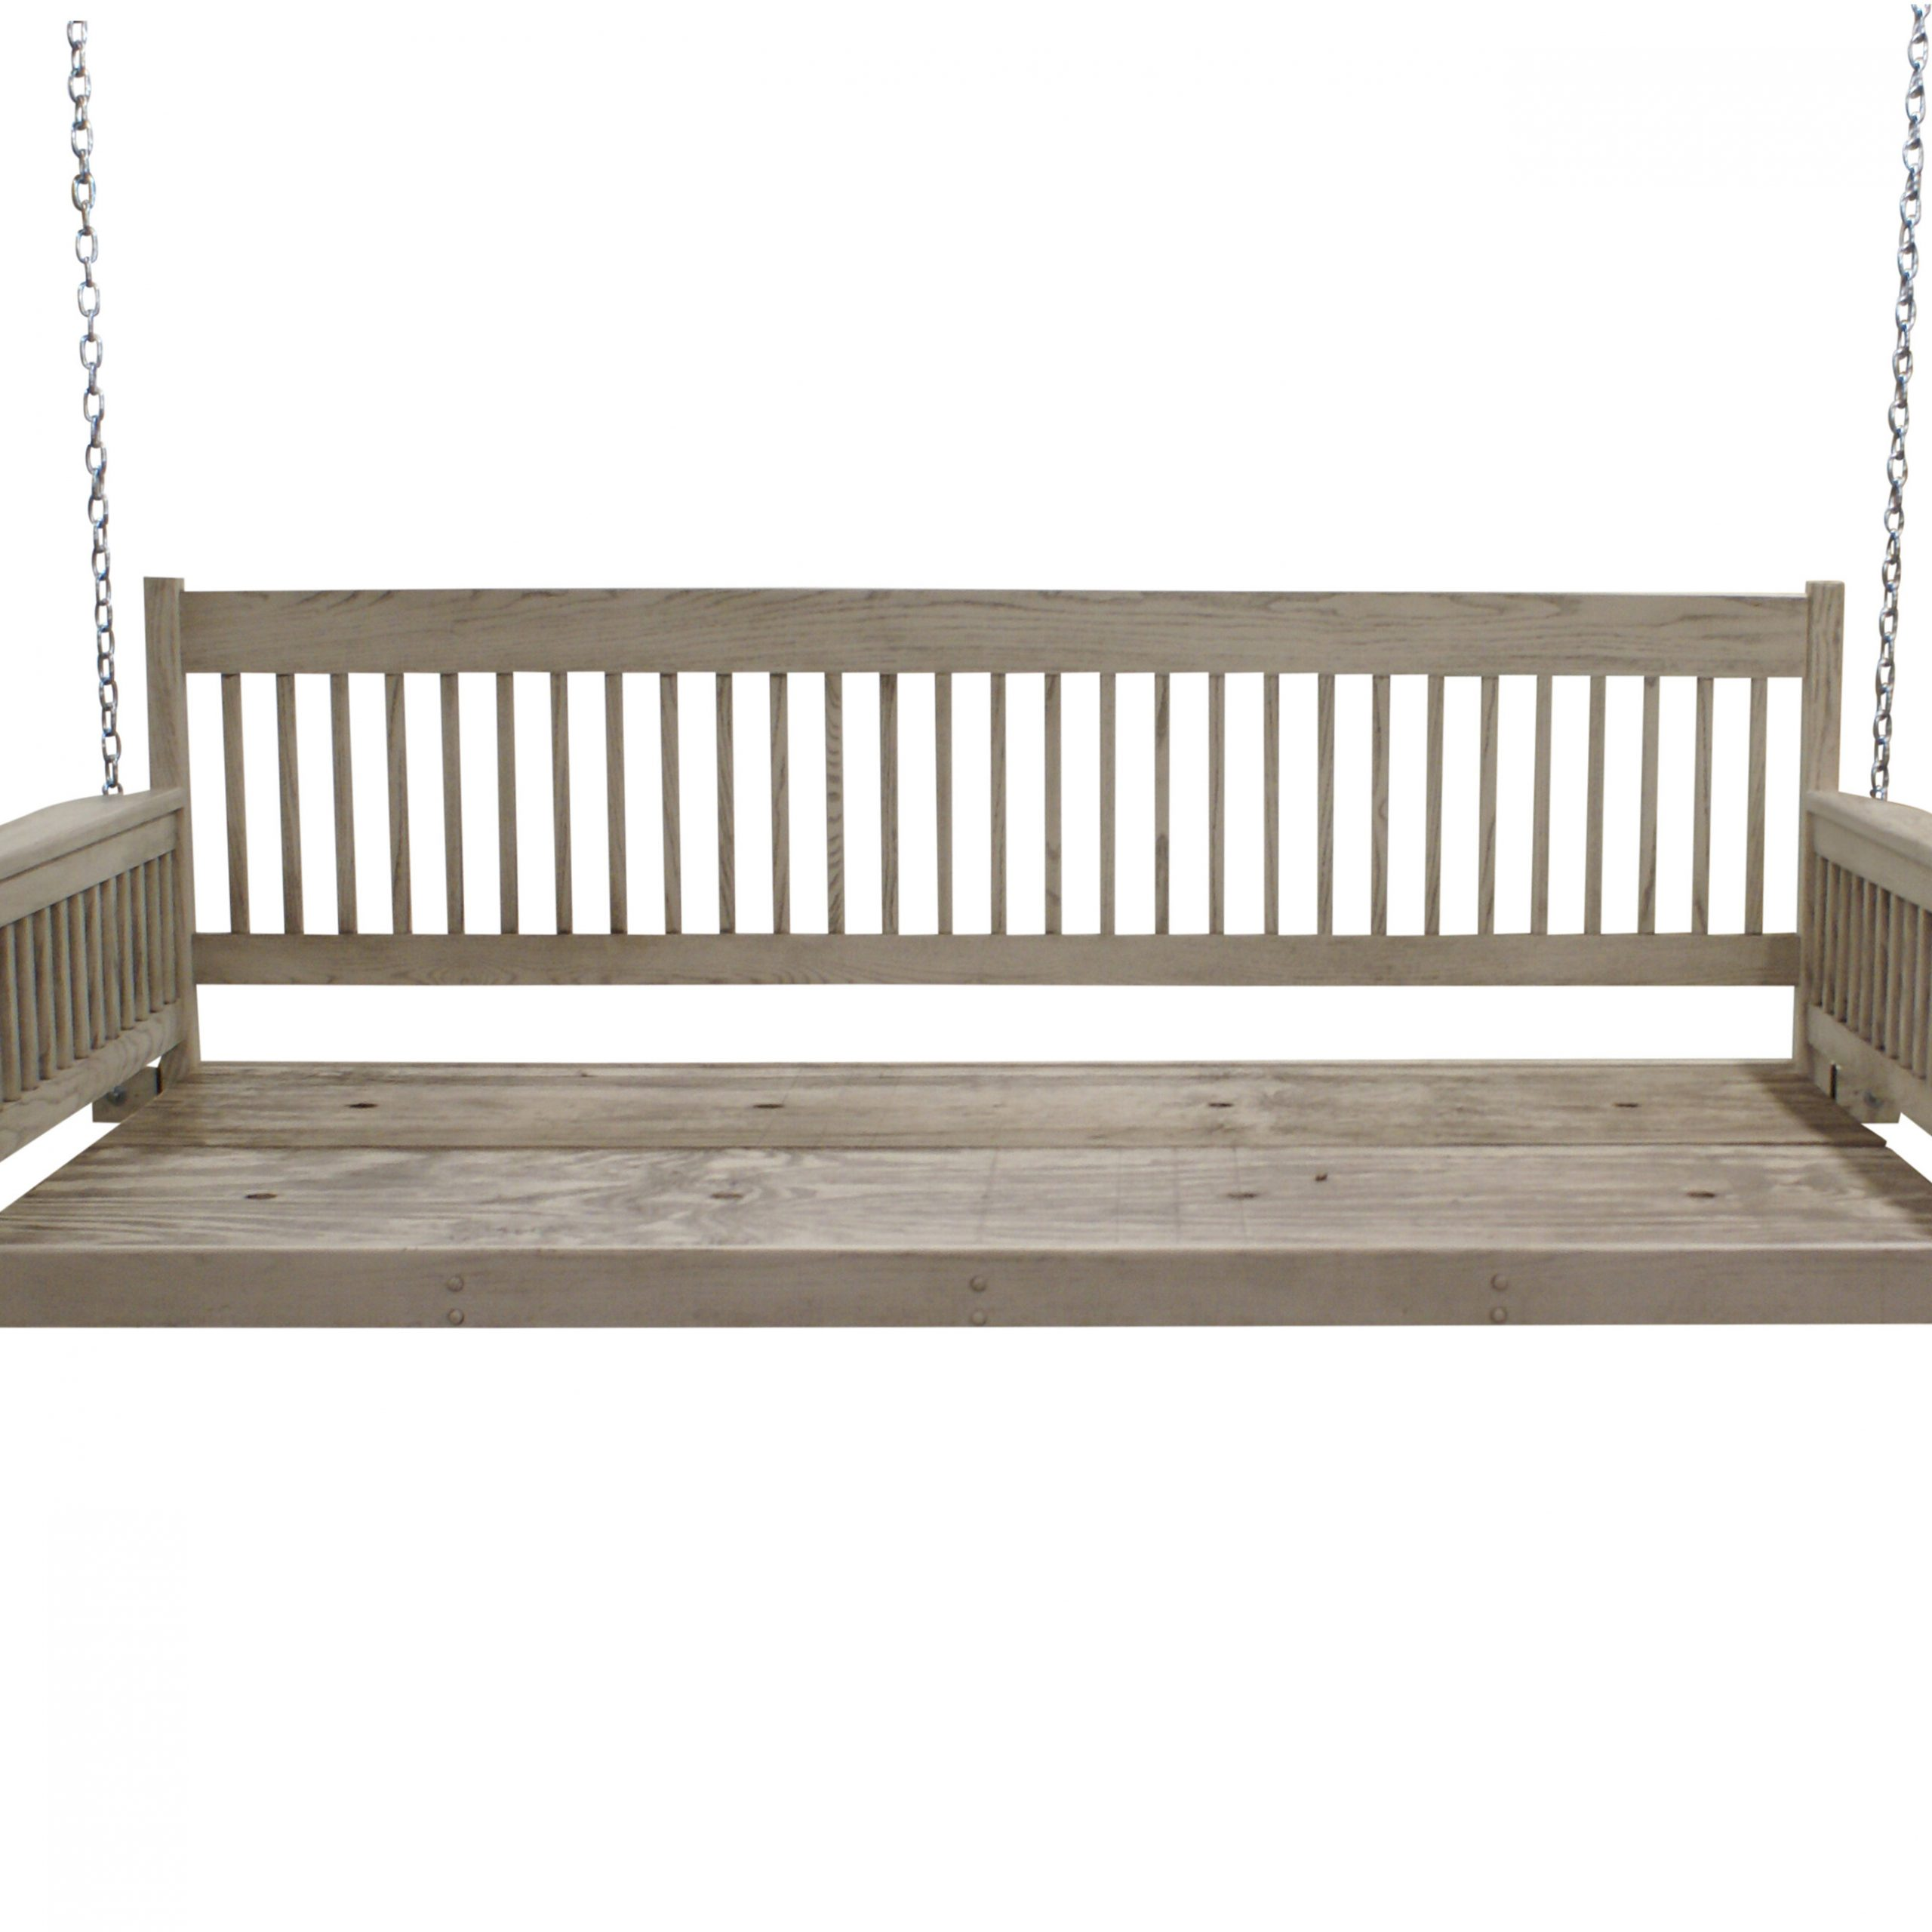 Cuddy Day Bed Porch Swing With Regard To Day Bed Porch Swings (View 14 of 25)